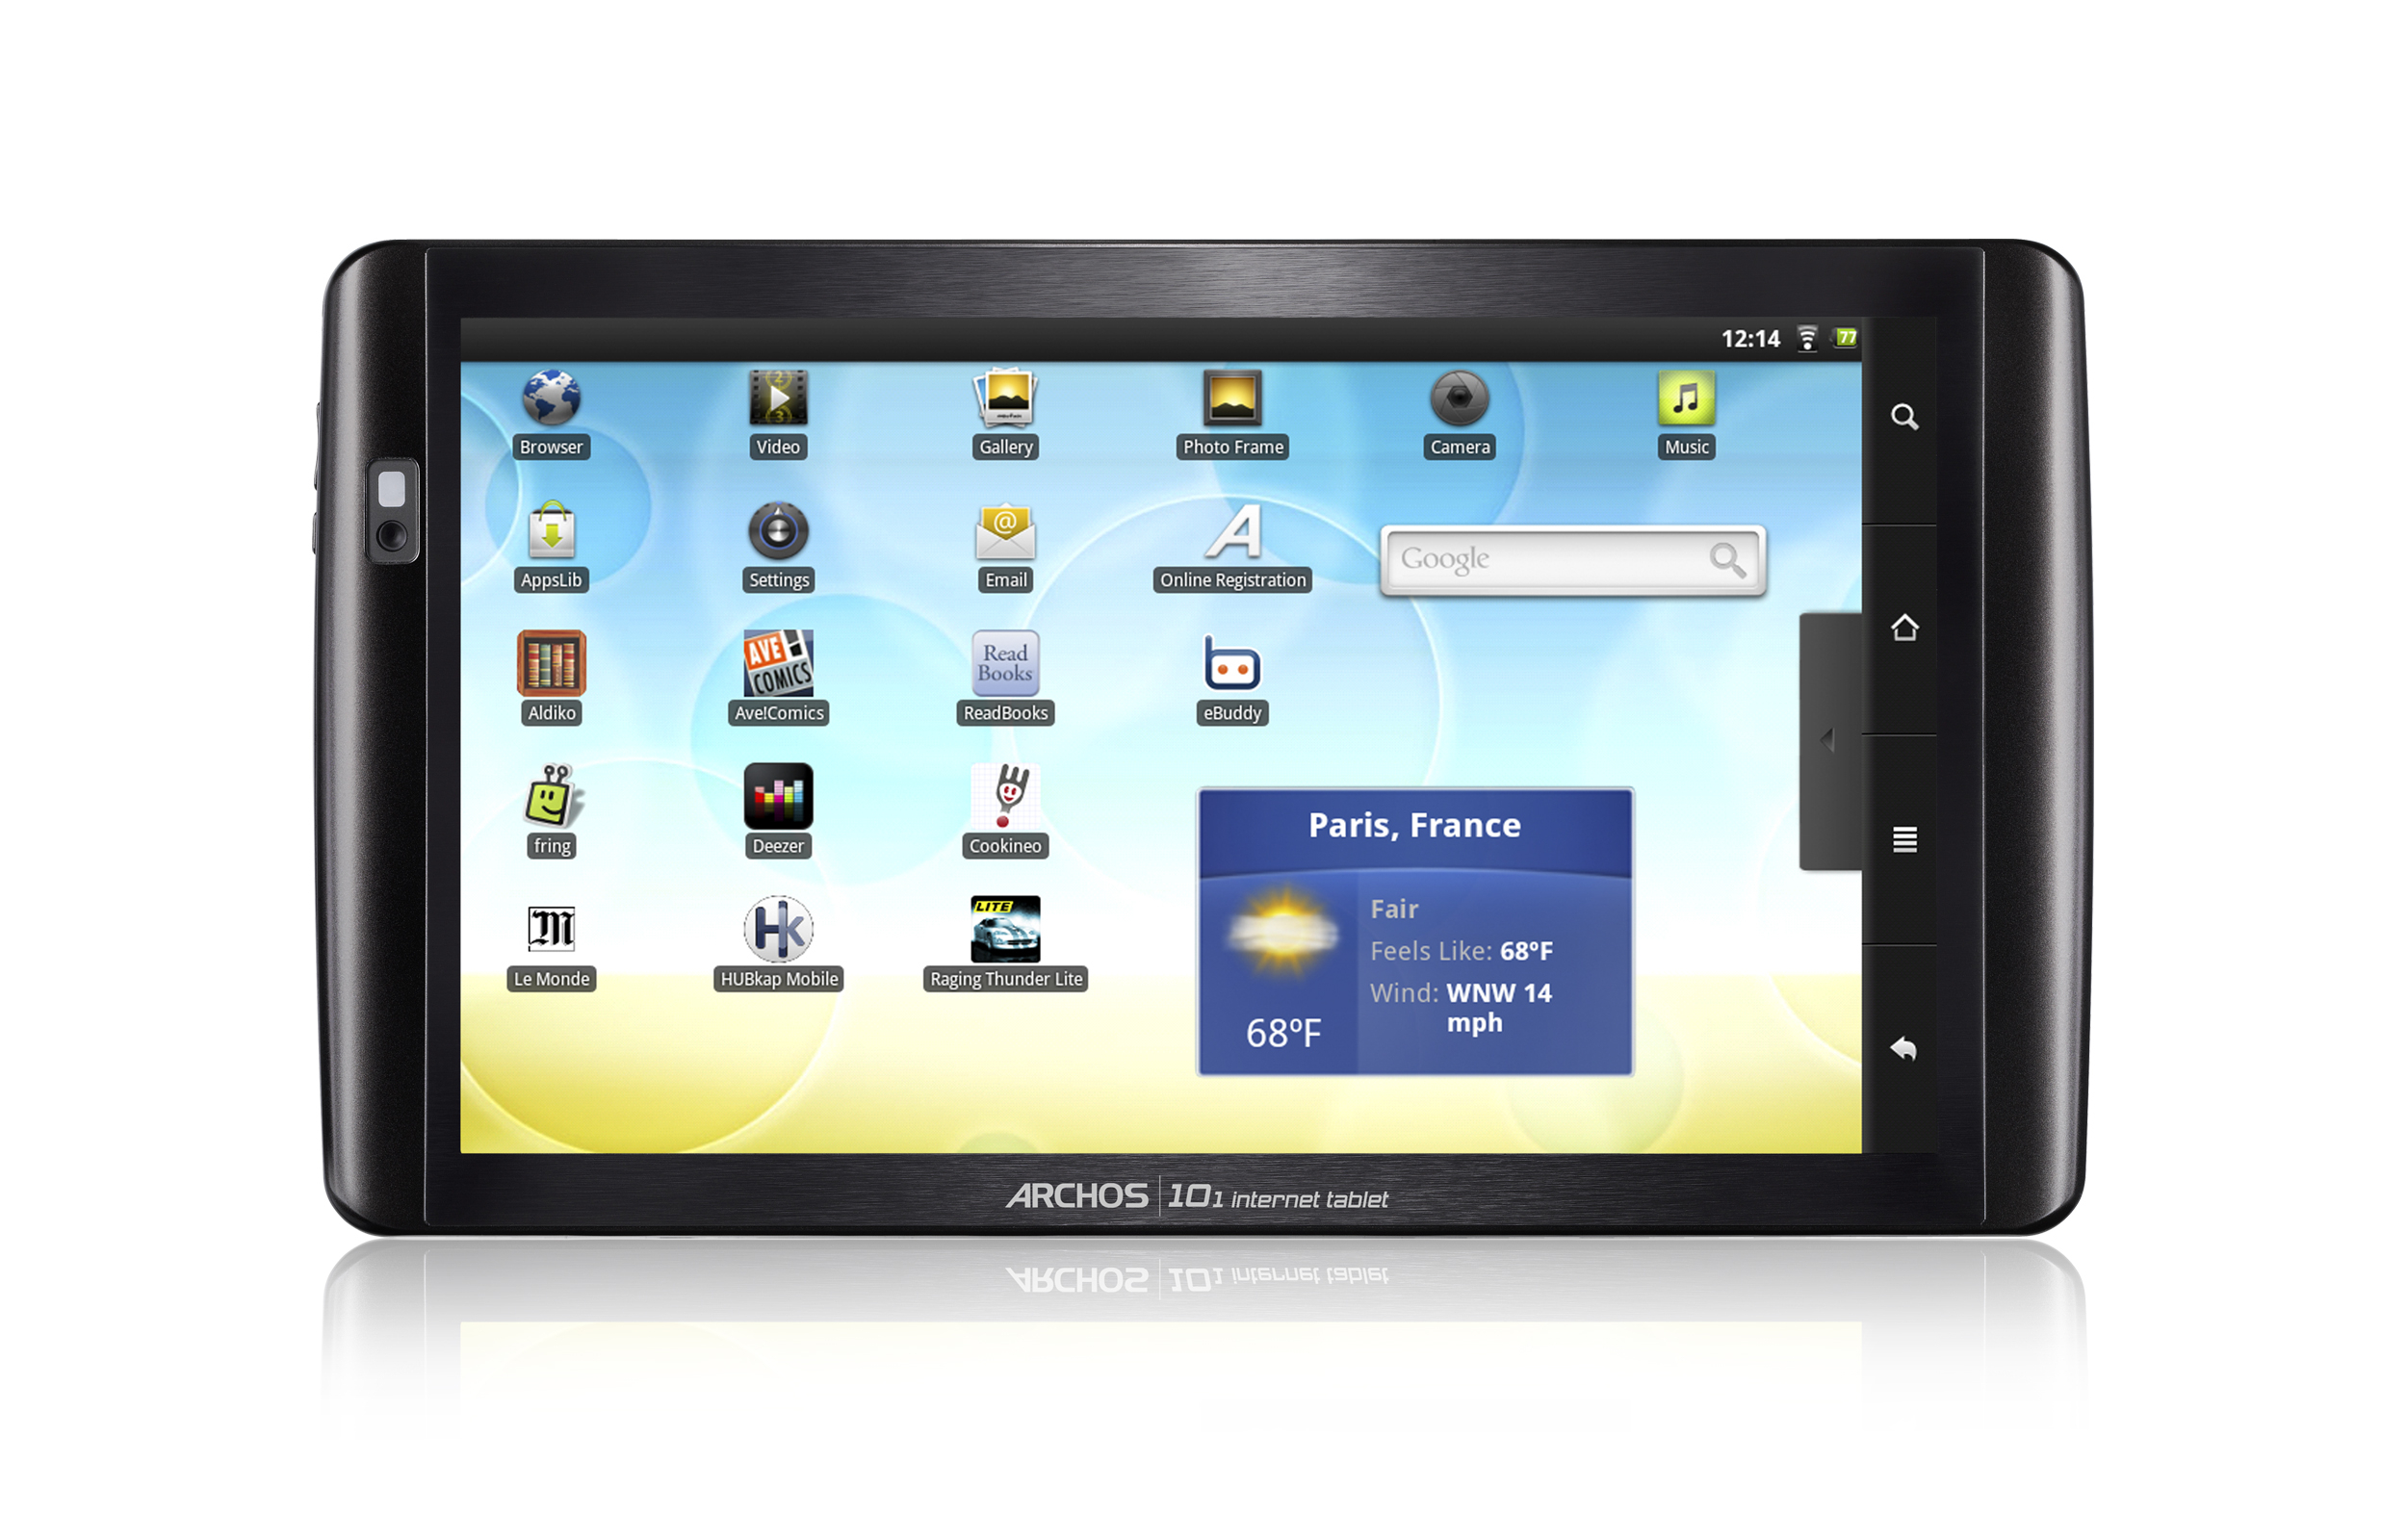 Archos 101 Internet tablet touch screen showing home page (1.68MB jpg